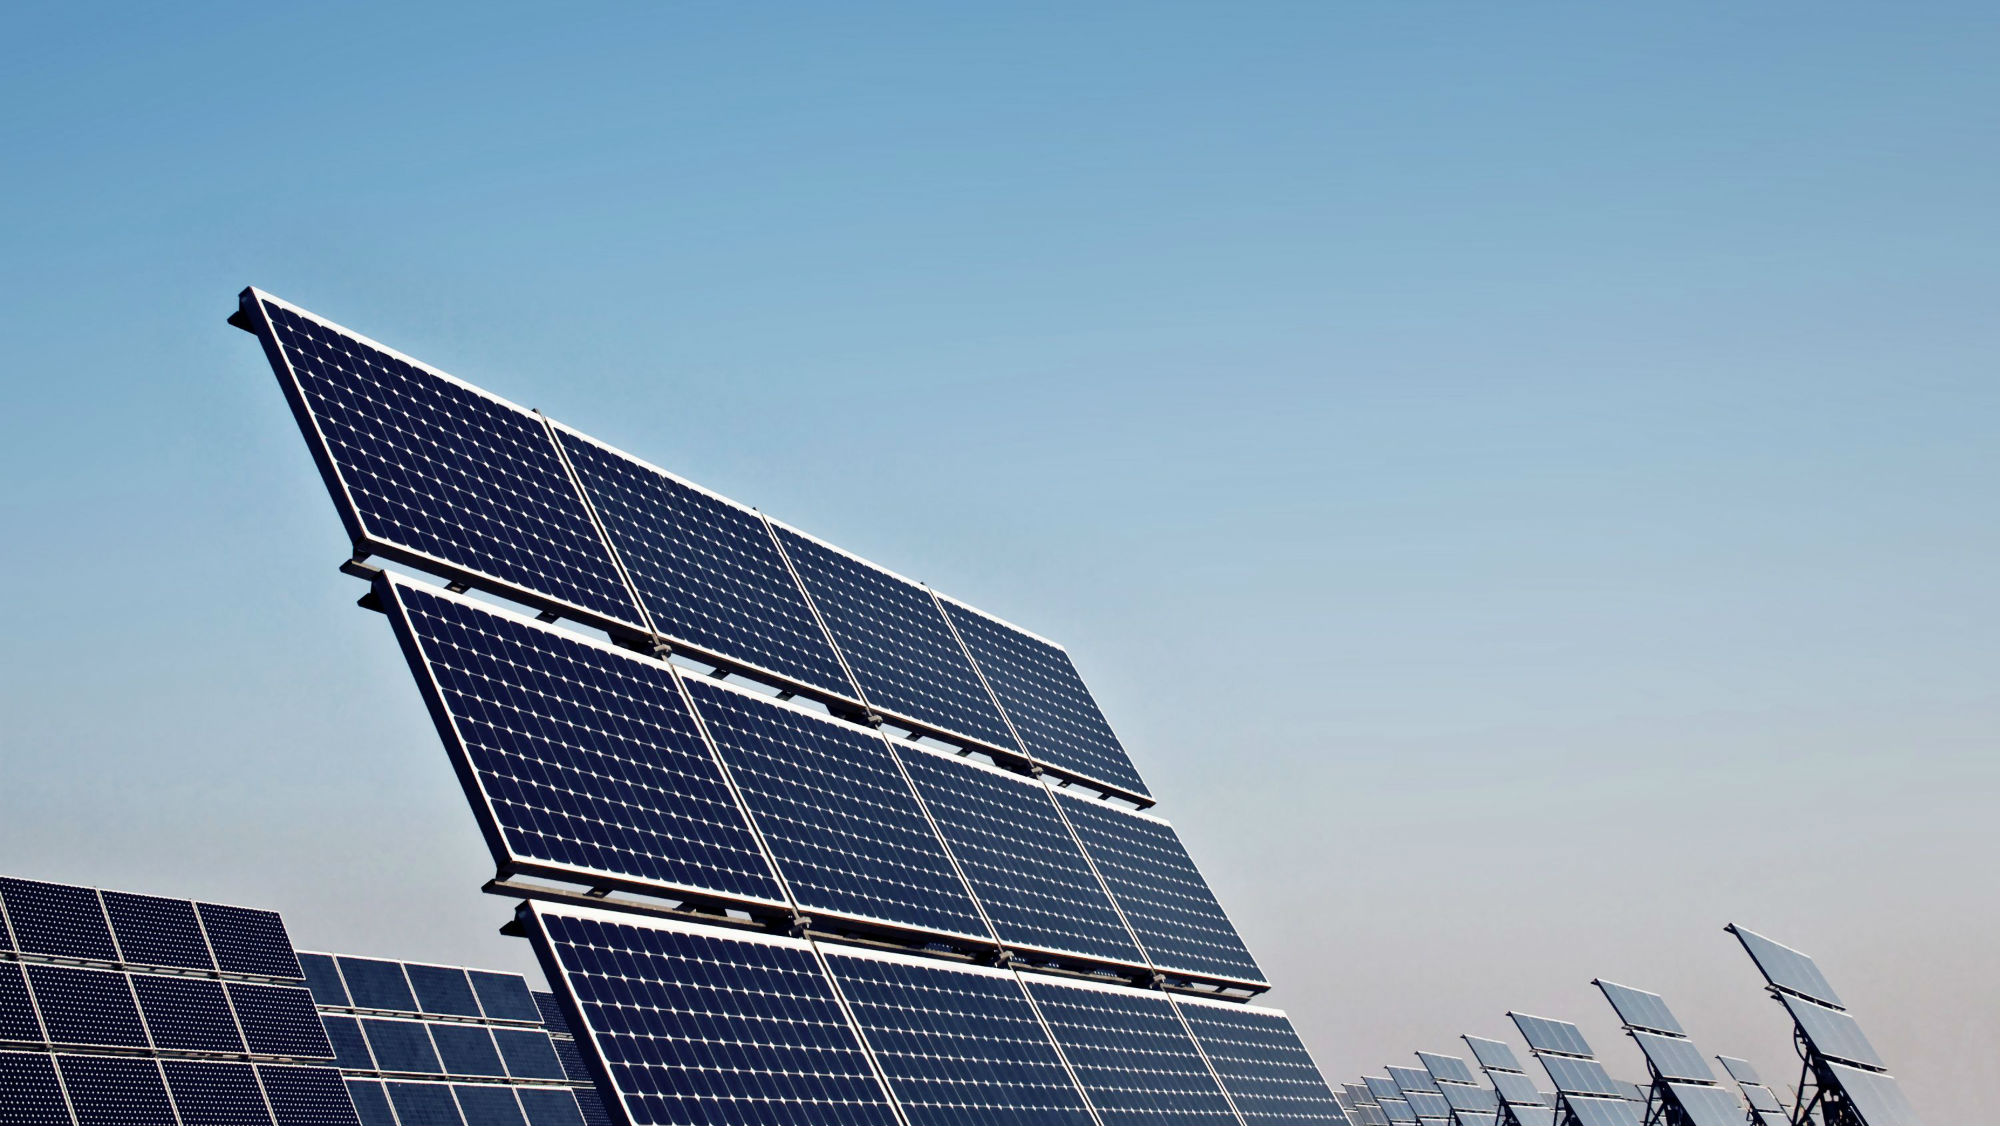 Solarpanels als alternative Energieerzeuger